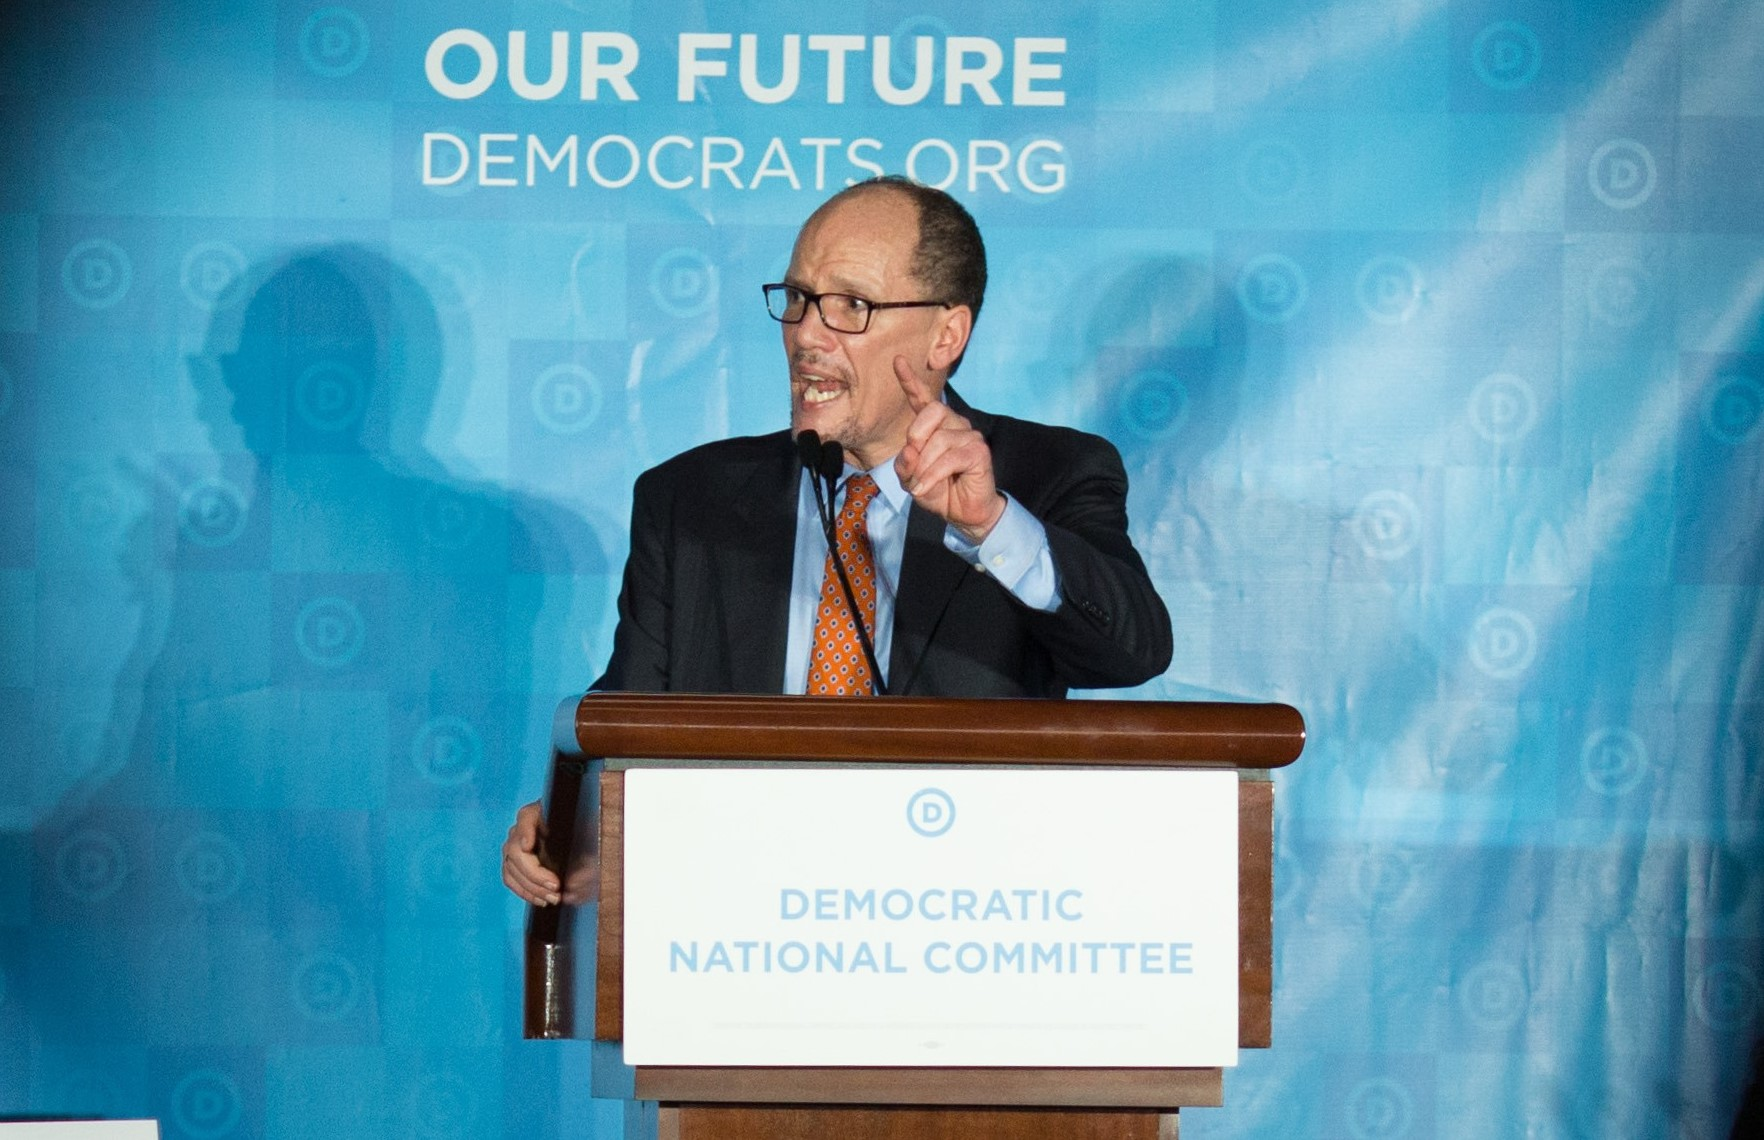 Thomas Perez, the former labor secretary, addresses the Democratic National Committee's winter meeting after being elected the DNC's new chairman in Atlanta on Feb. 25, 2017. Perez asked Rep. Keith Ellison of Minnesota, whom he narrowly beat in a run-off vote, to serve as the new deputy chairman.  (New York Times)